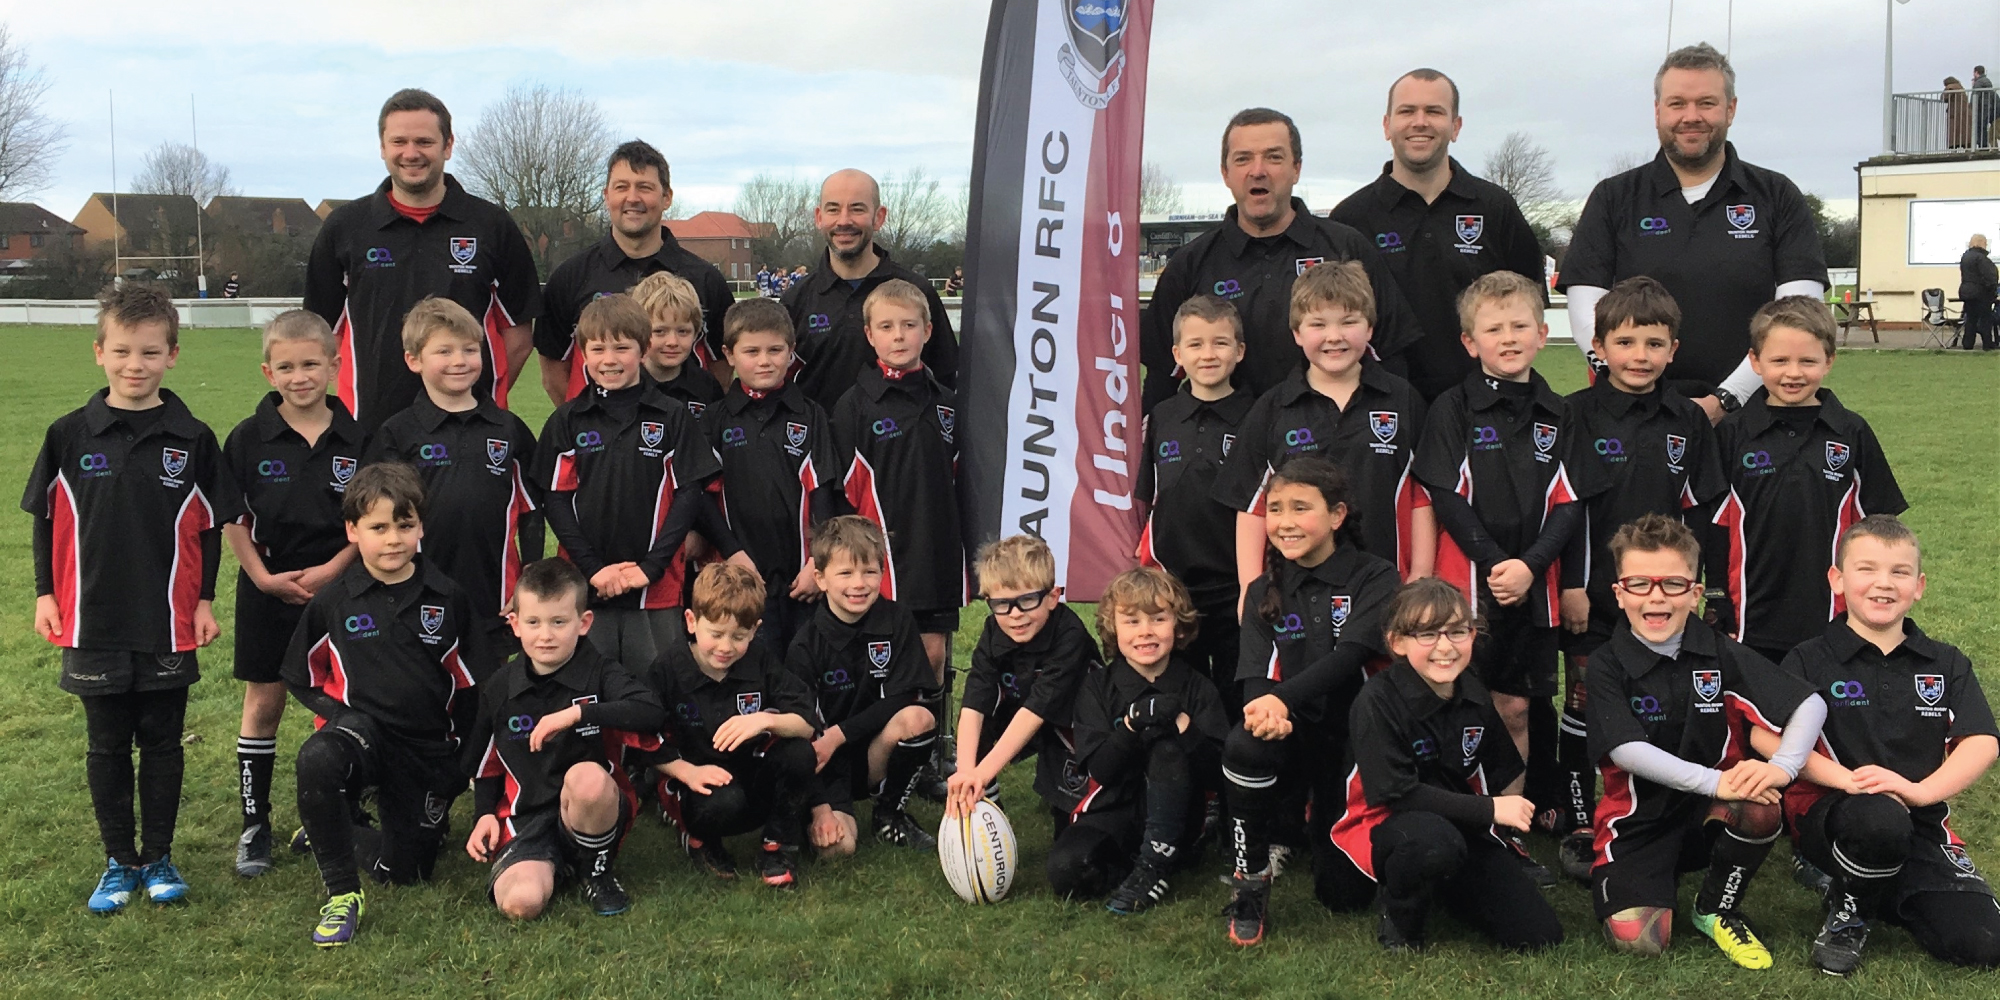 Taunton Rebels - Under 10 rugby squad